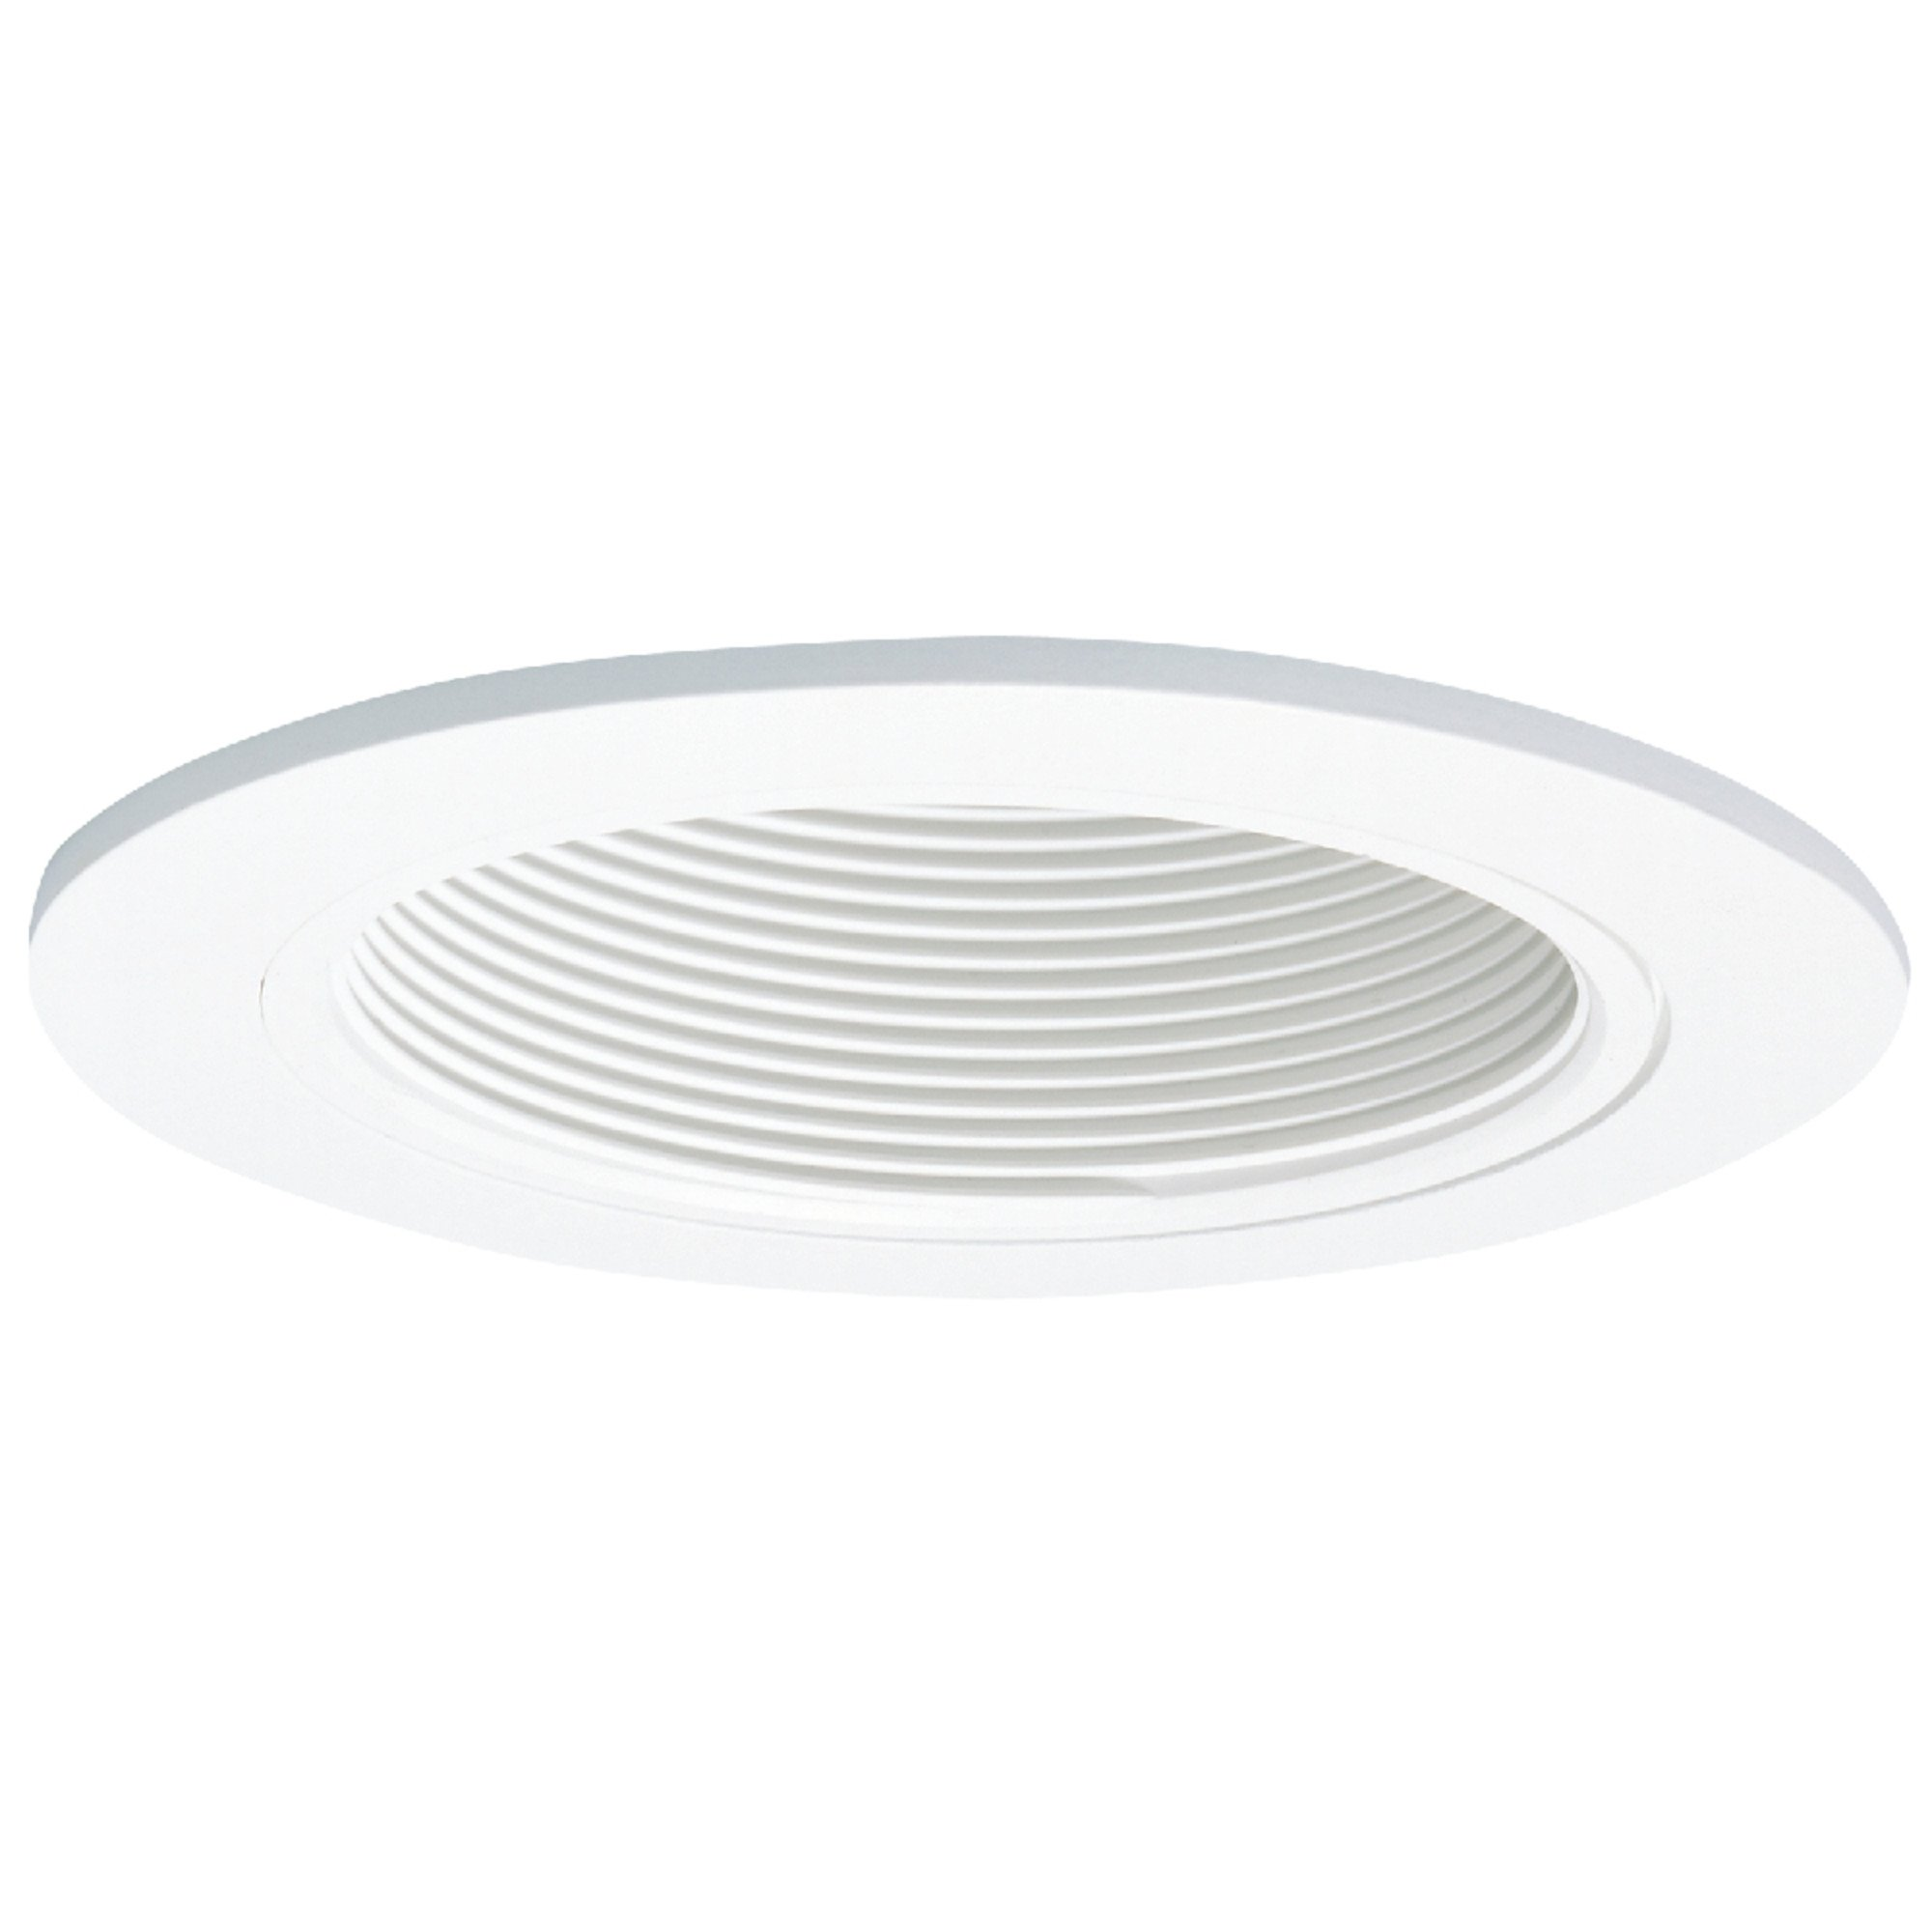 Halo 993W, 4'' Trim Coilex Baffle White Trim with White Baffle